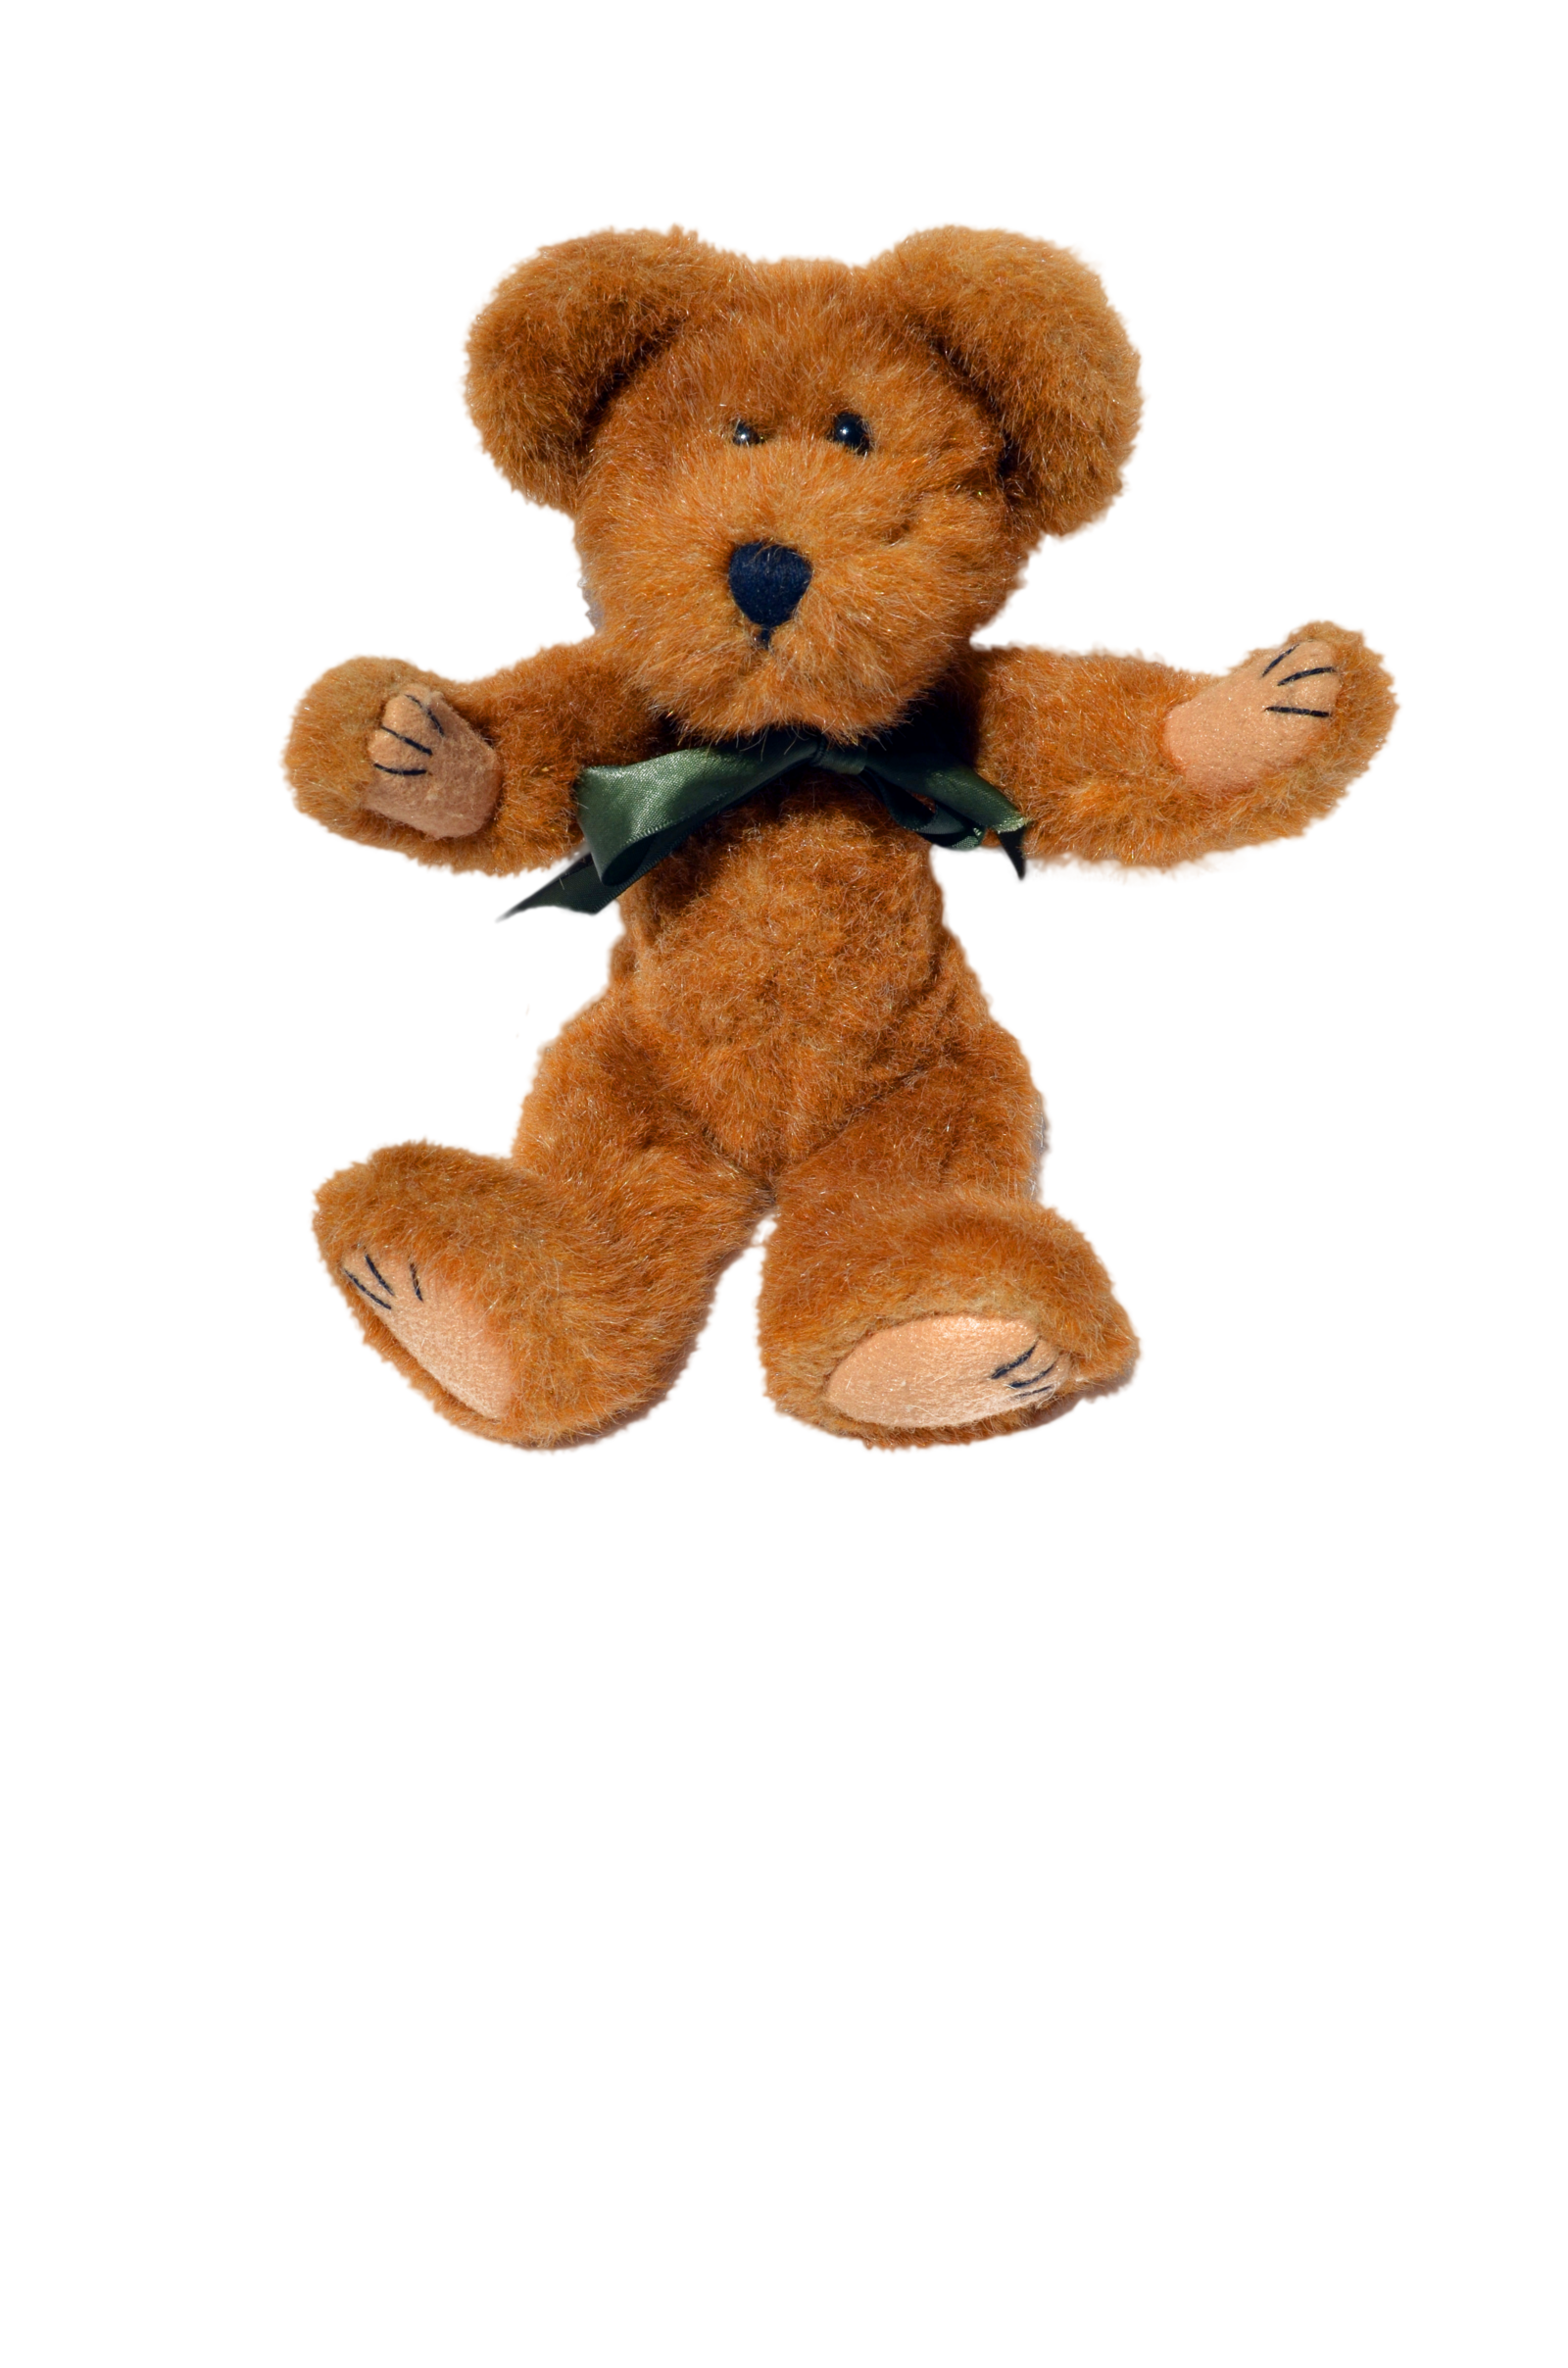 teddy bear photo png annamae deviantart #15731